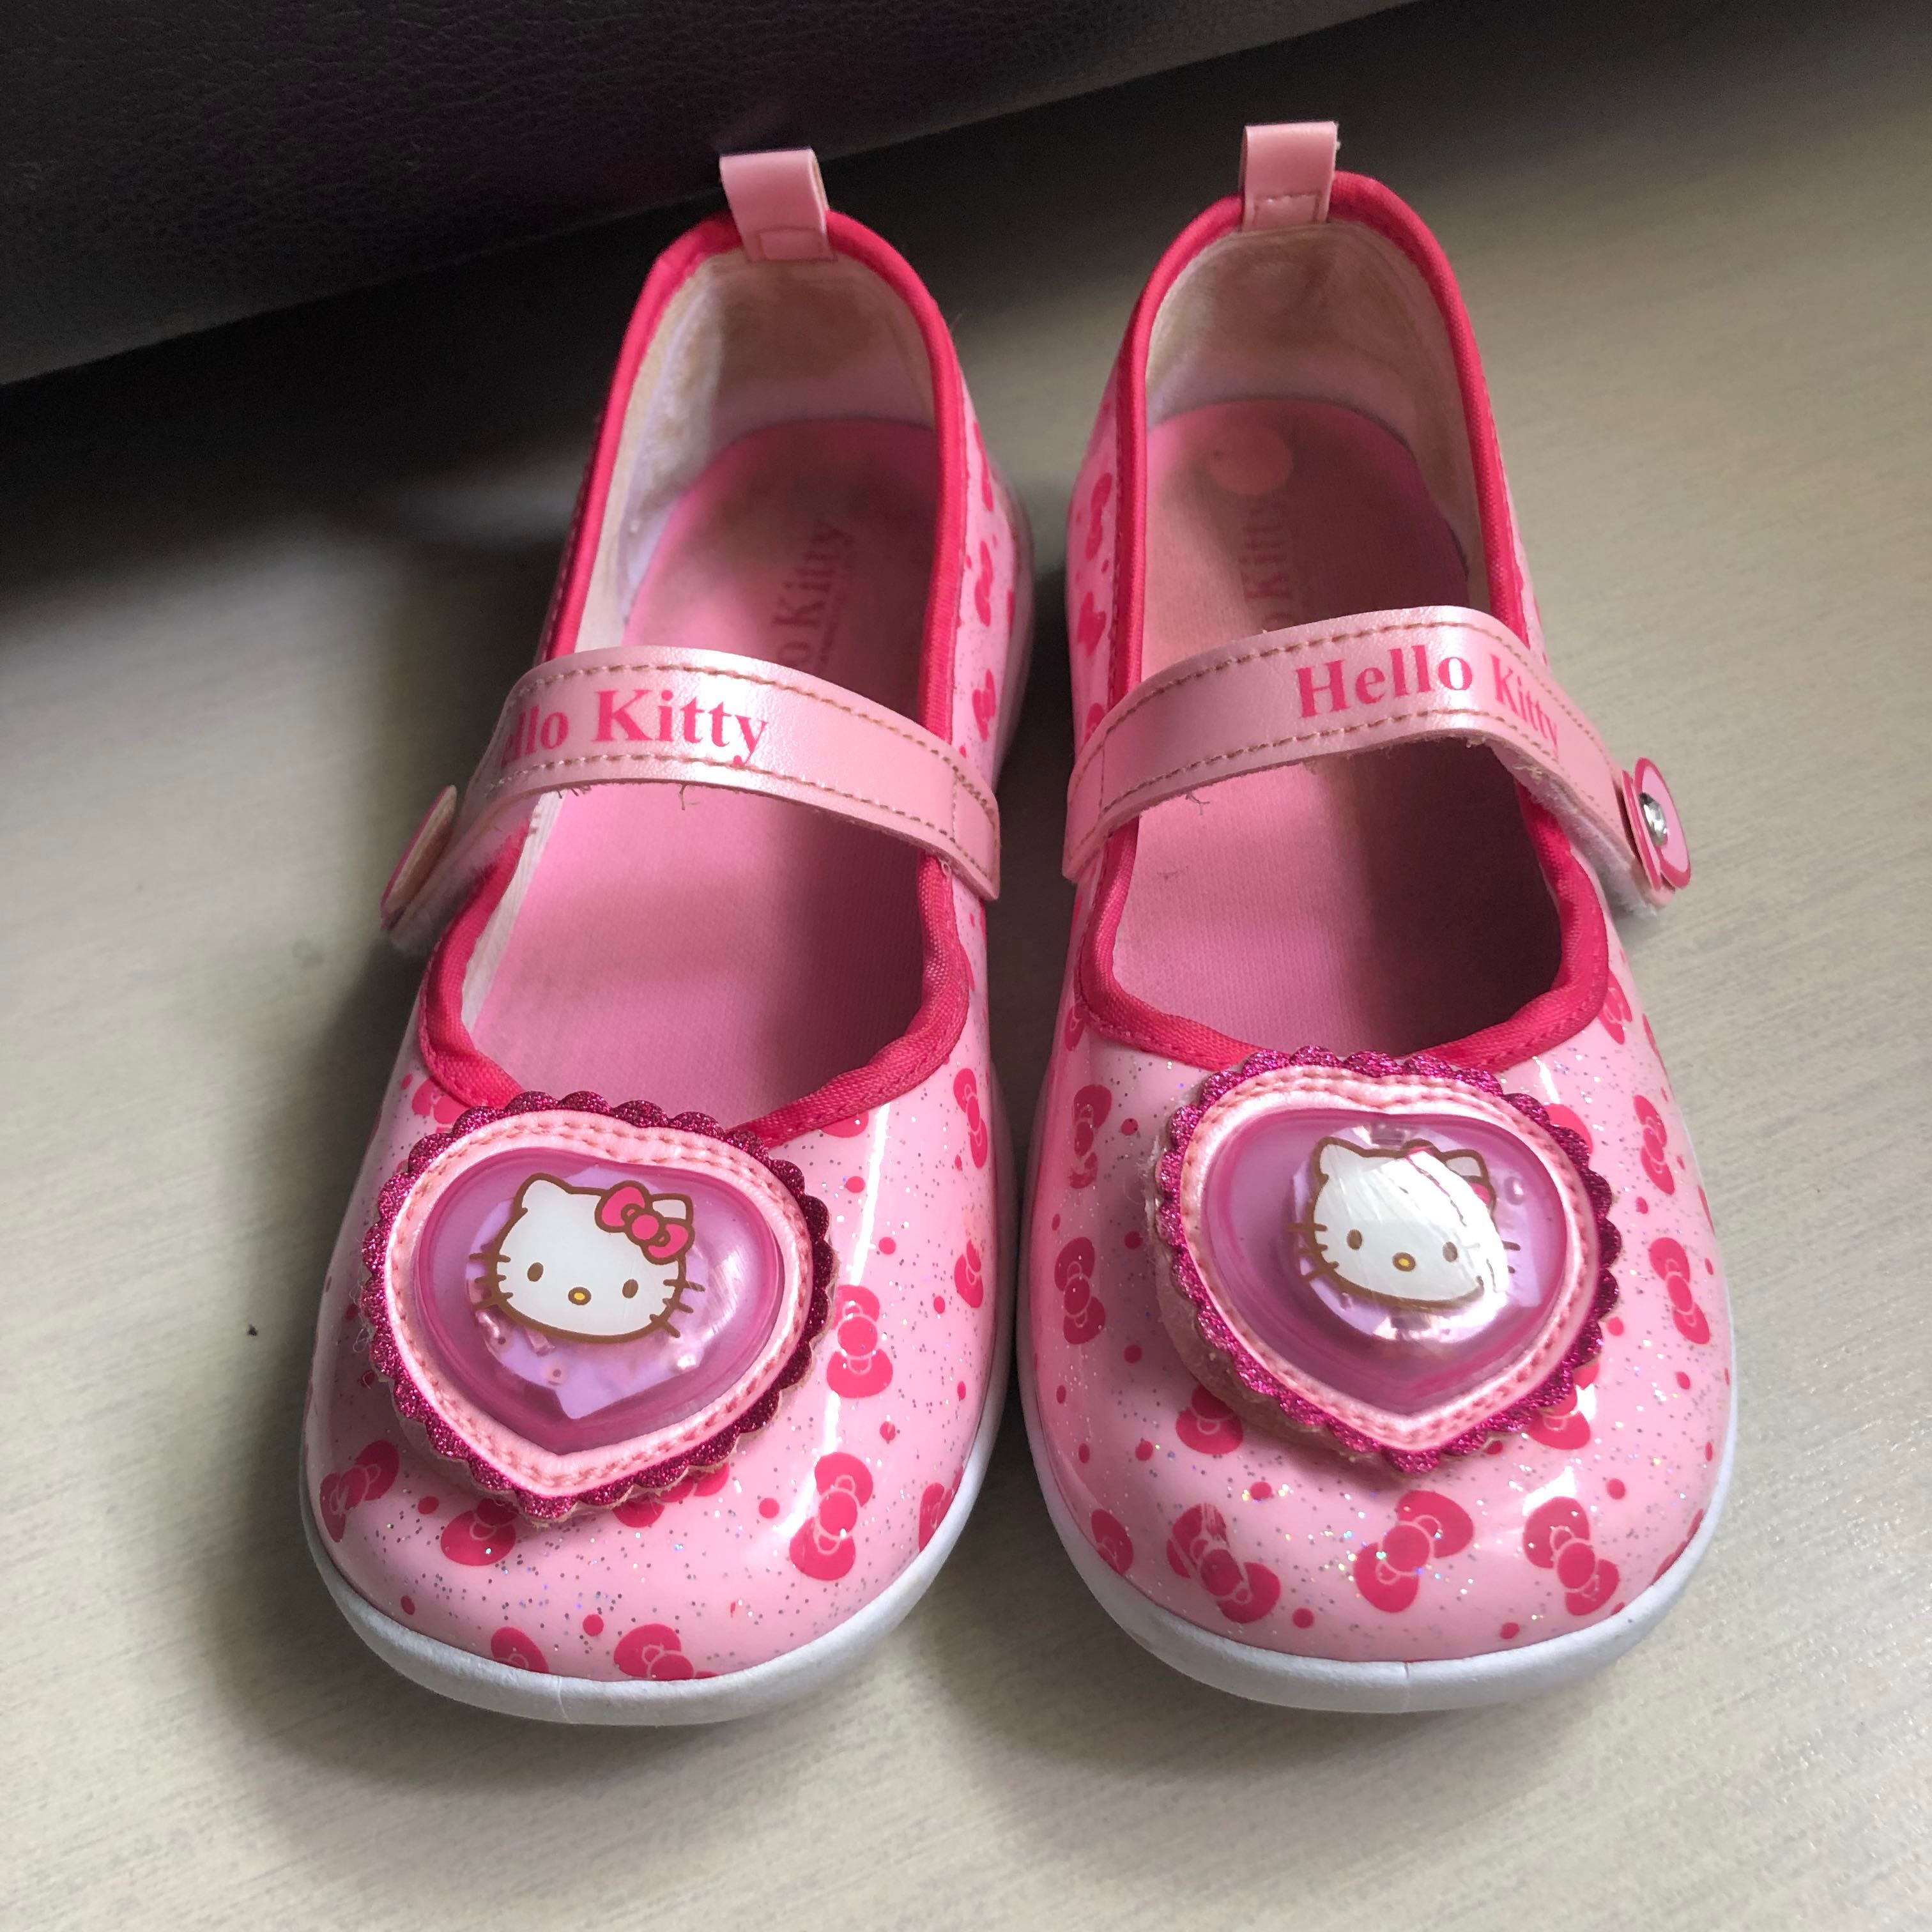 c379fc8907 Hello kitty shoes babies kids girls apparel to years on carousell jpg  3024x3024 Hello kitty shoes